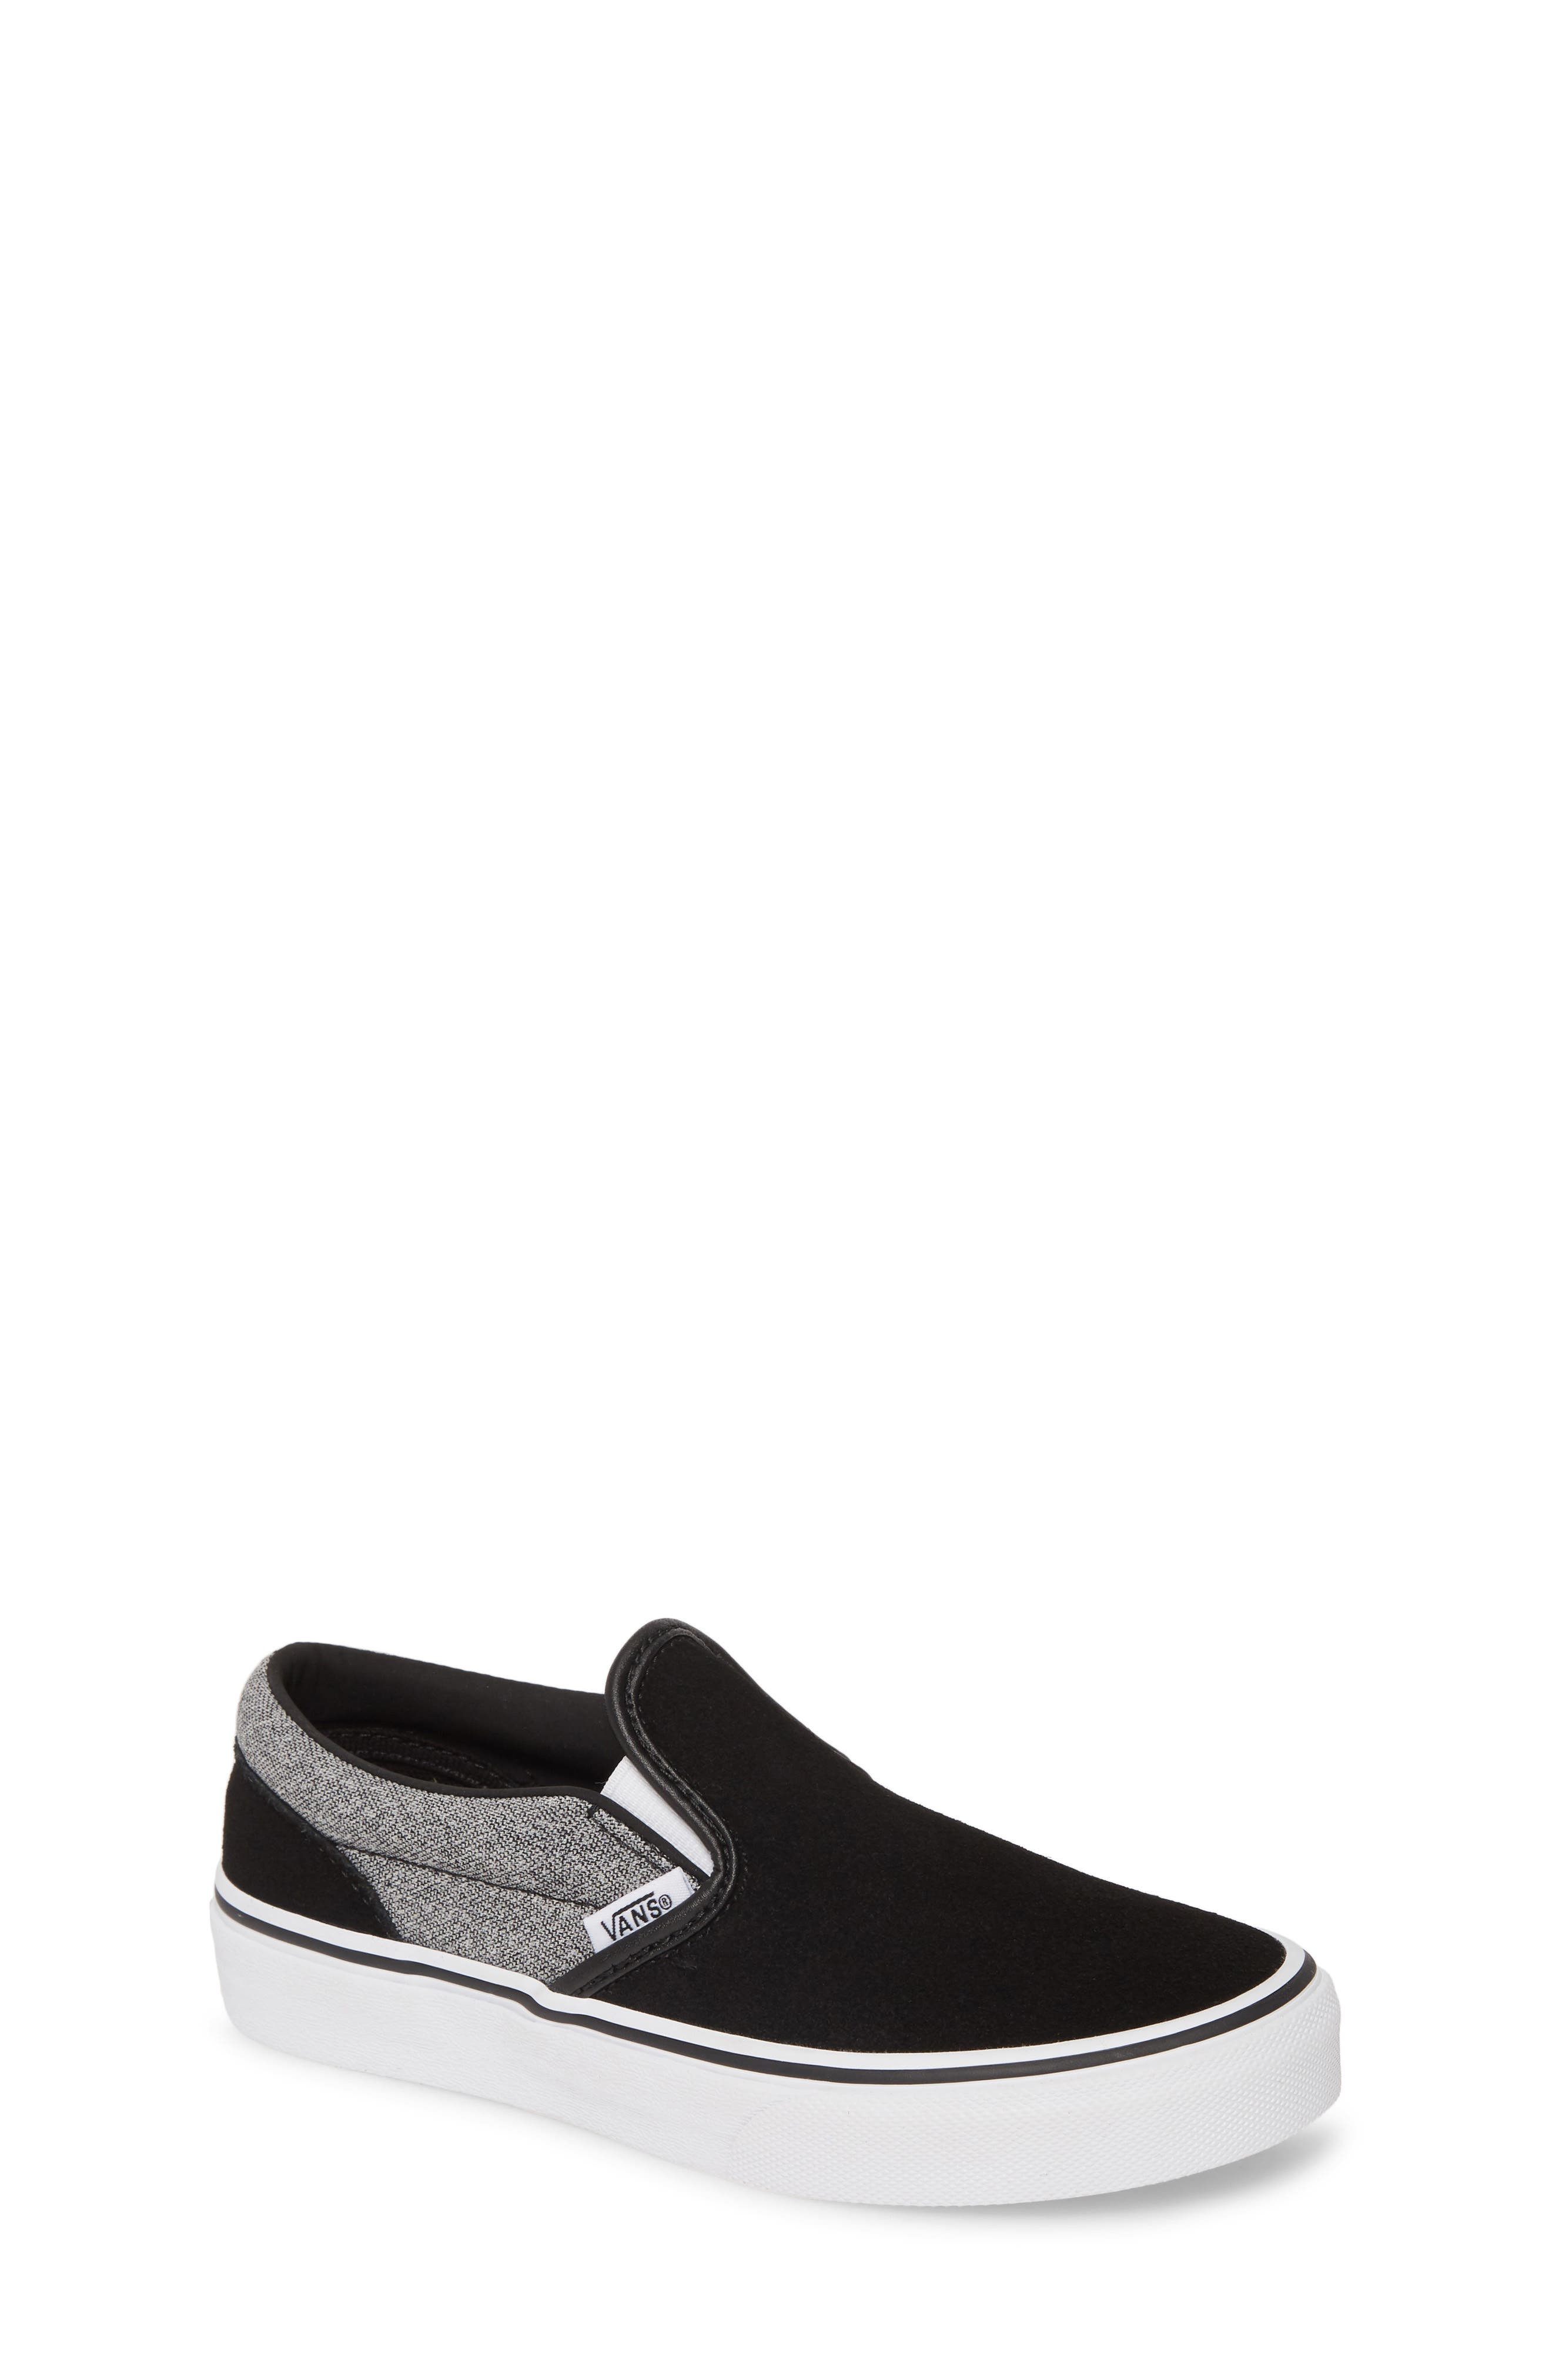 Toddler Boys' Shoes (Sizes 7.5 12) | Nordstrom